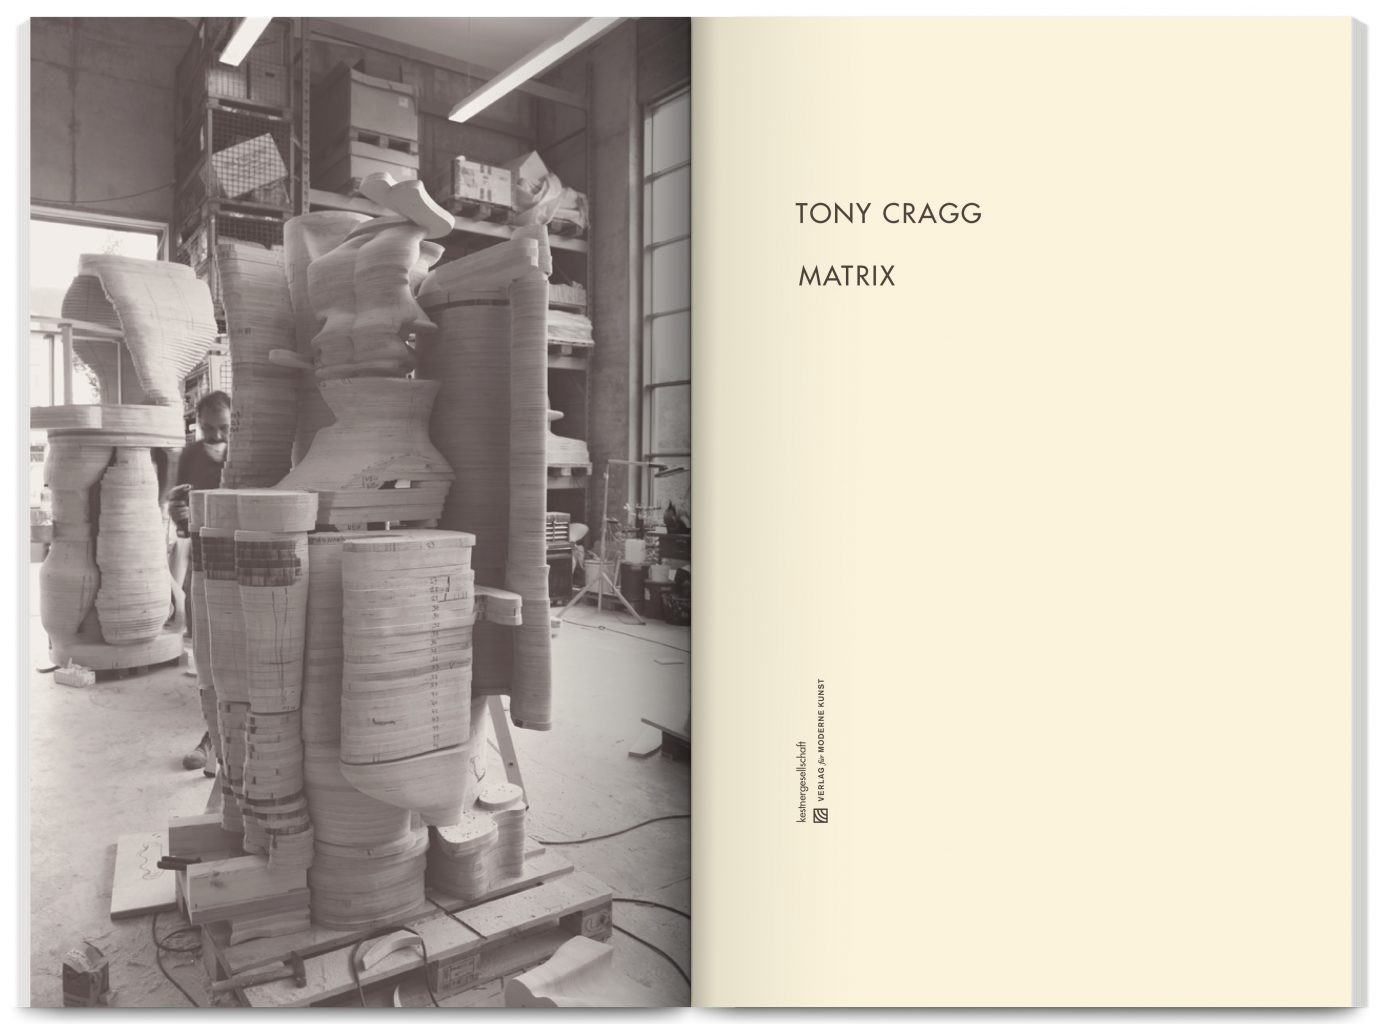 Publication Tony Cragg: Matrix, edited by Anthony Cragg, Antonia Lotz, Veit Görner, published by kestnergesellschaft, Verlag für moderne Kunst, Hannover, designed by In the shade of a tree studio, founded by Sophie Demay and Maël Fournier Comte.